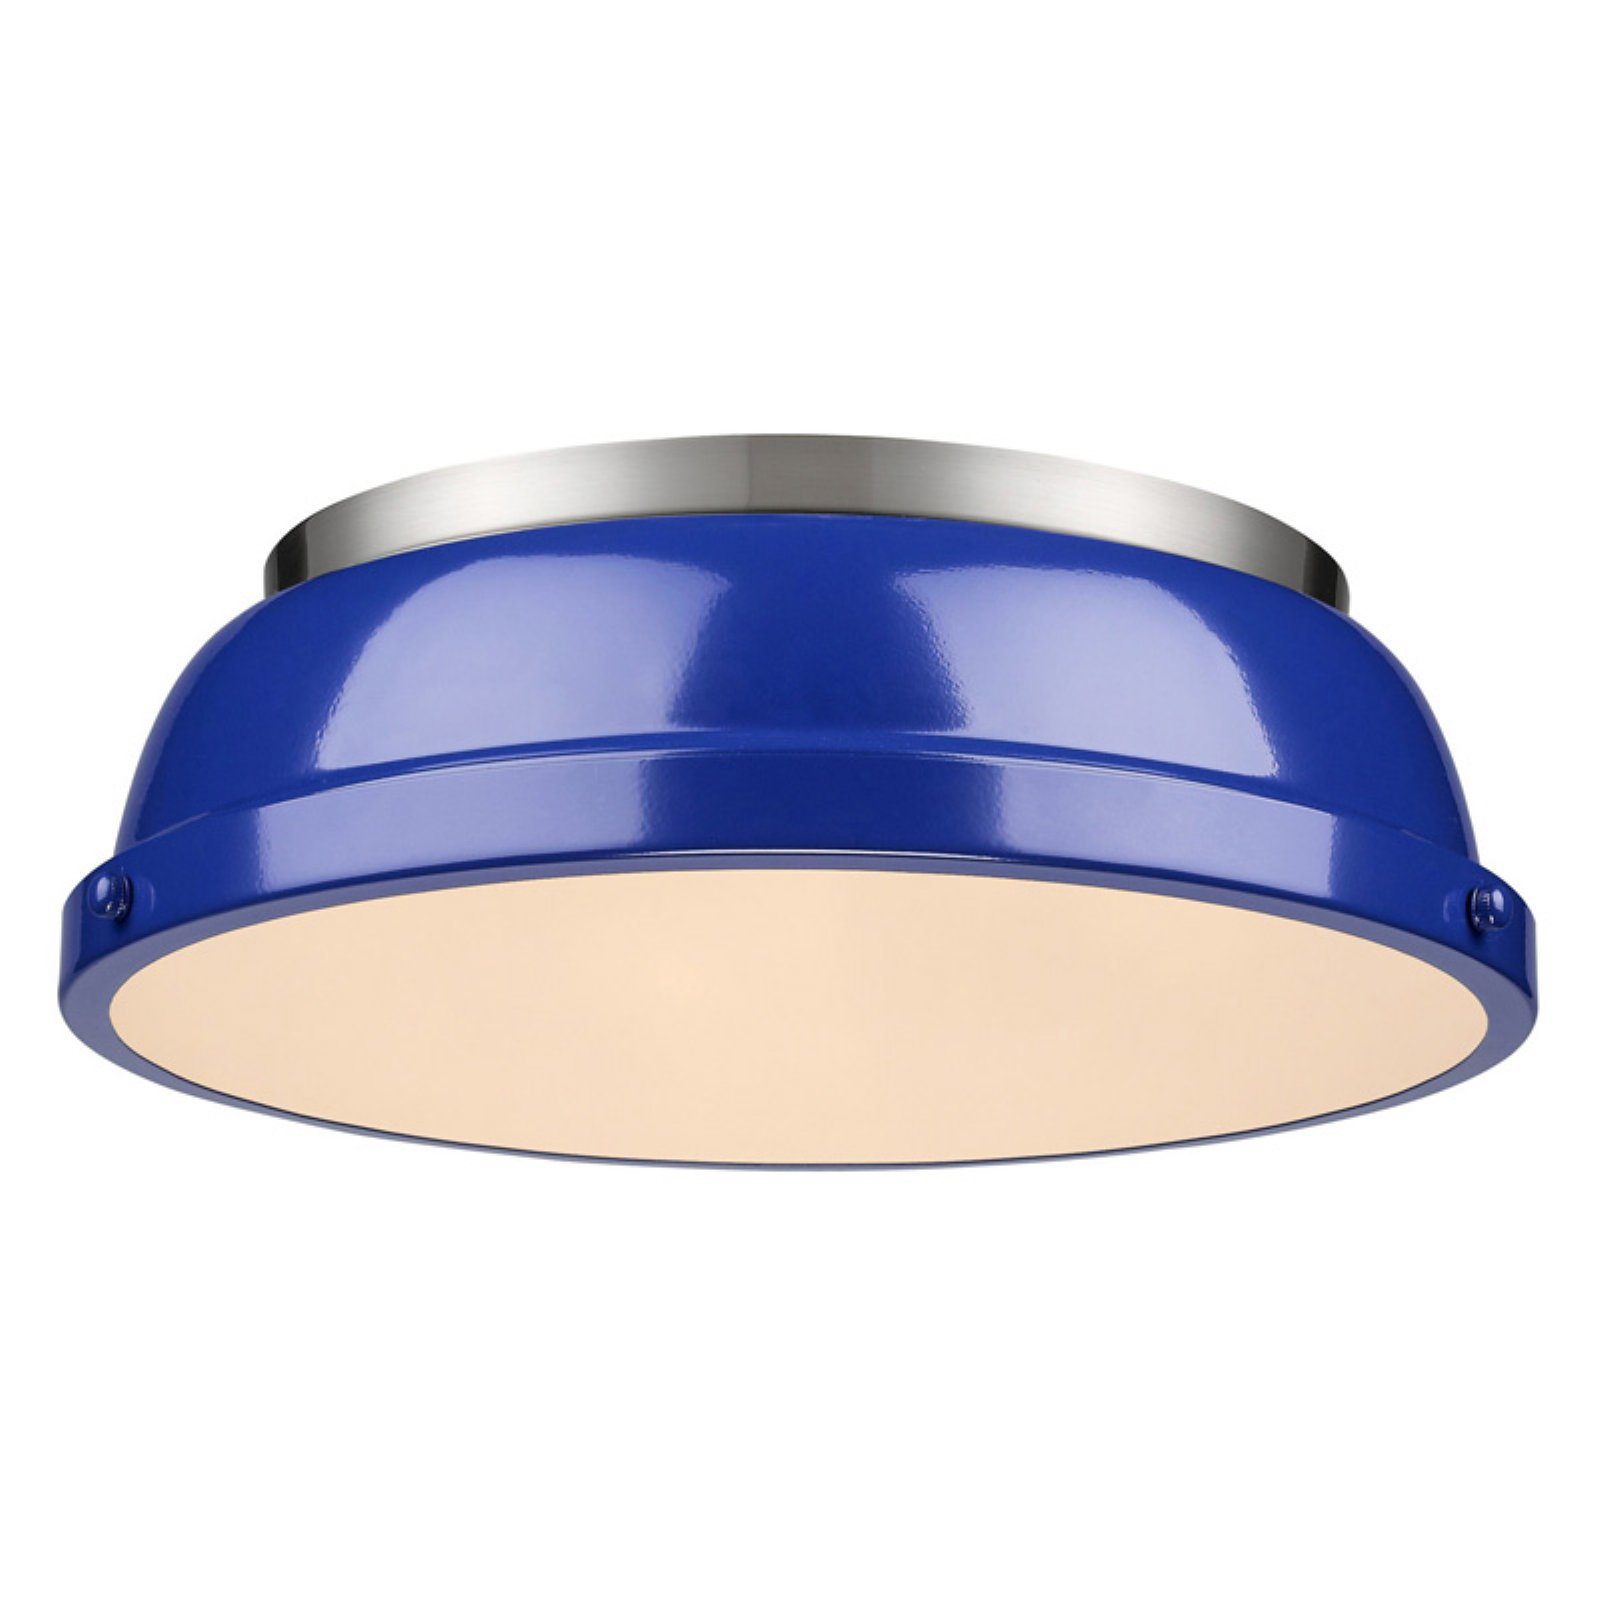 Golden Lighting 3602 14 2 Light Wide Flush Mount Ceiling Fixture From The Du Com